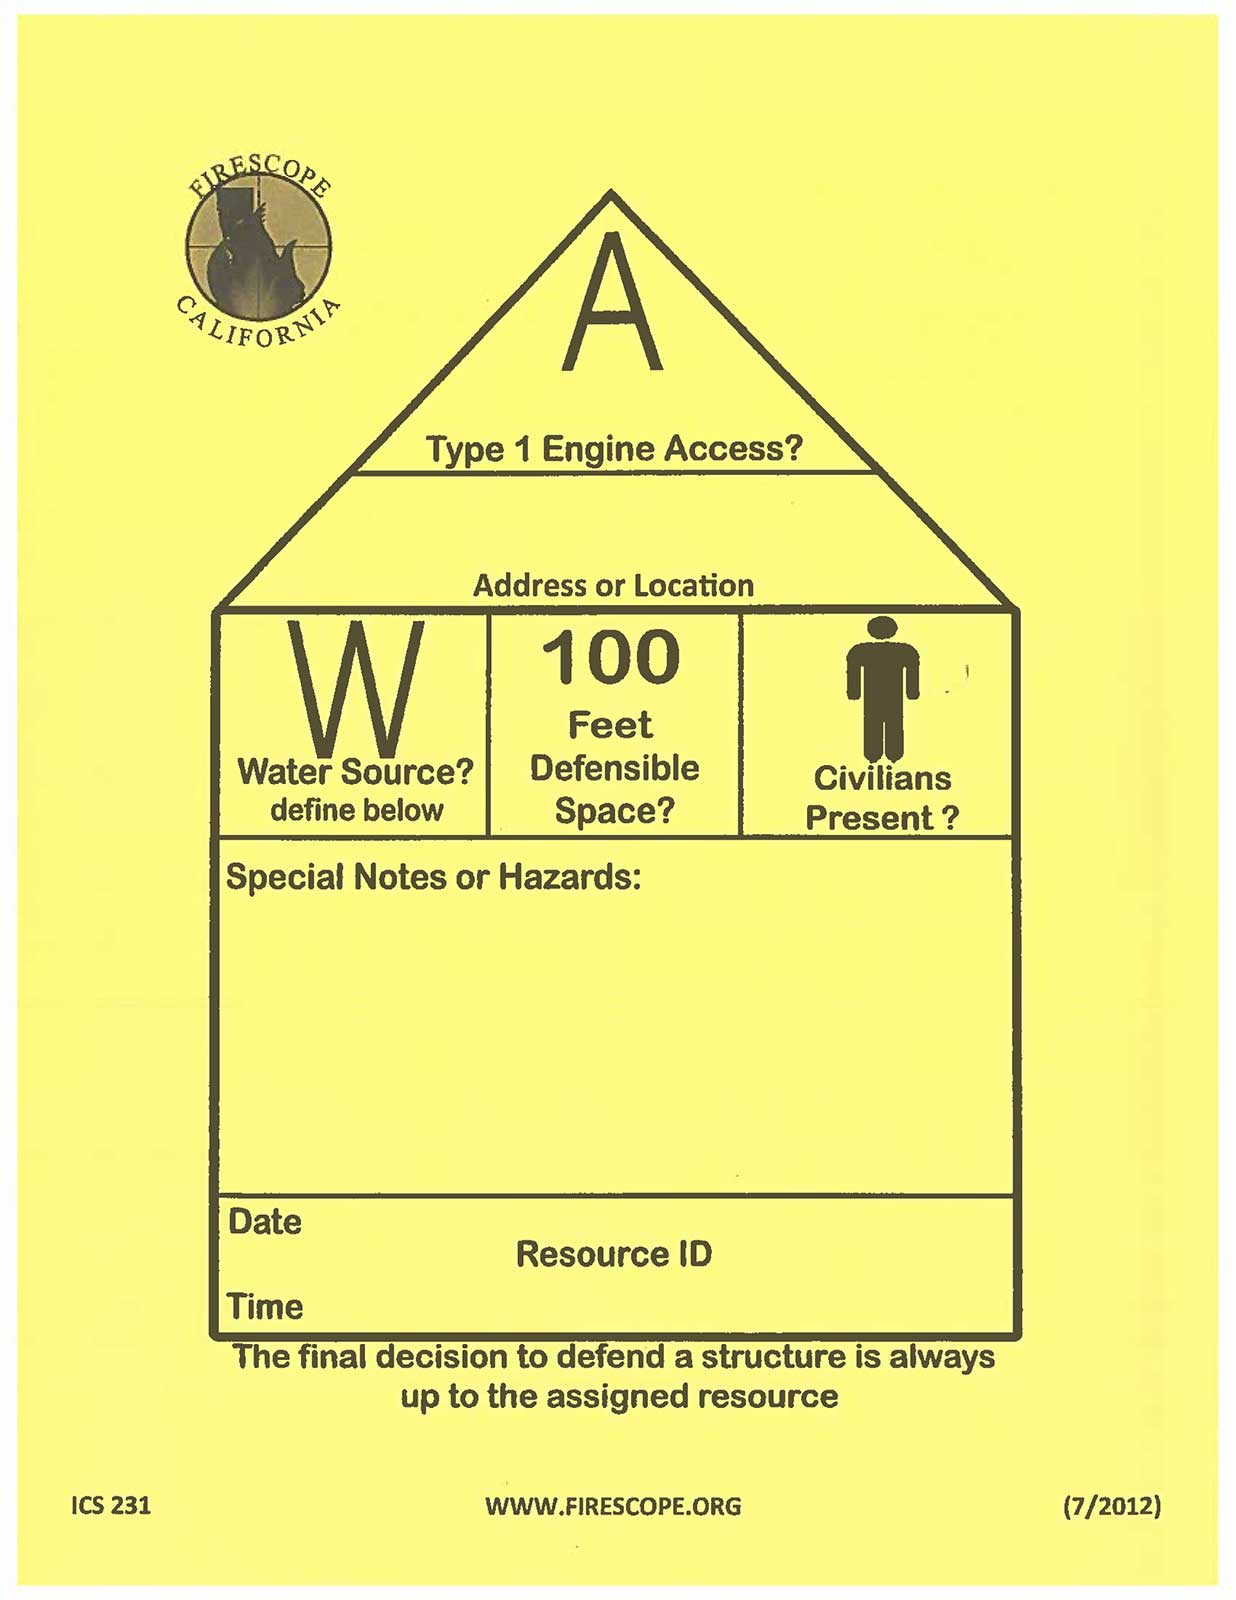 Form used by firefighters to evaluate buildings.